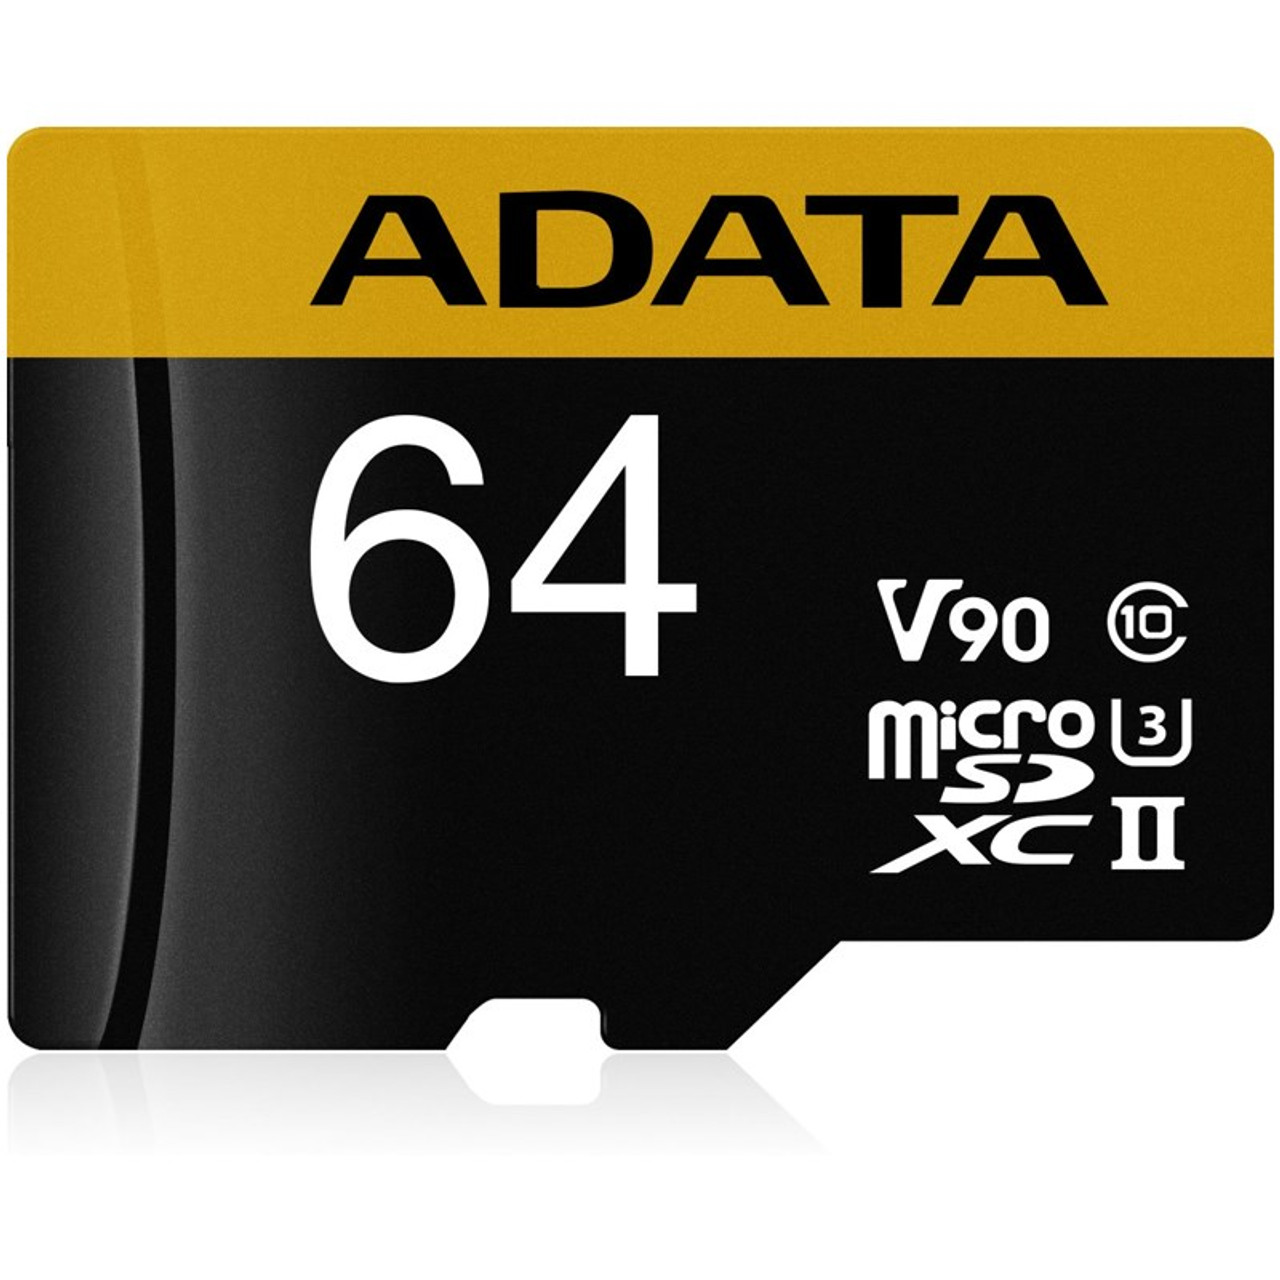 Image for Adata 64GB Premier ONE microSDXC UHS-II Memory Card with SD Adaptor - 275MB/s CX Computer Superstore